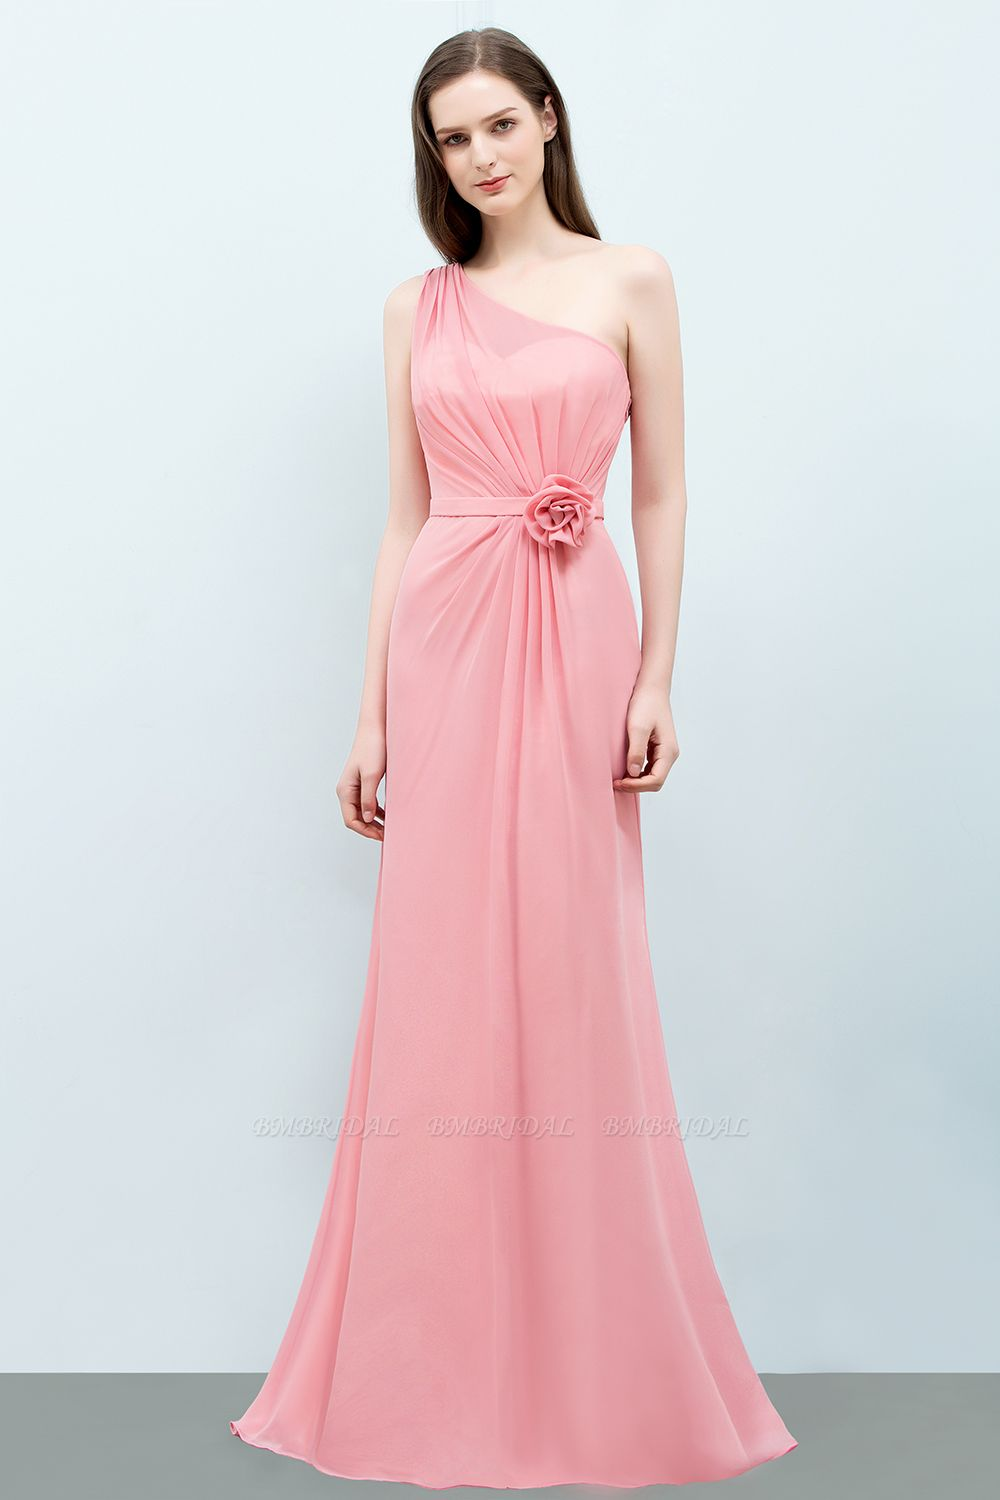 Affordable Mermaid One shoulder Pink Bridesmaid Dresses with Flowers